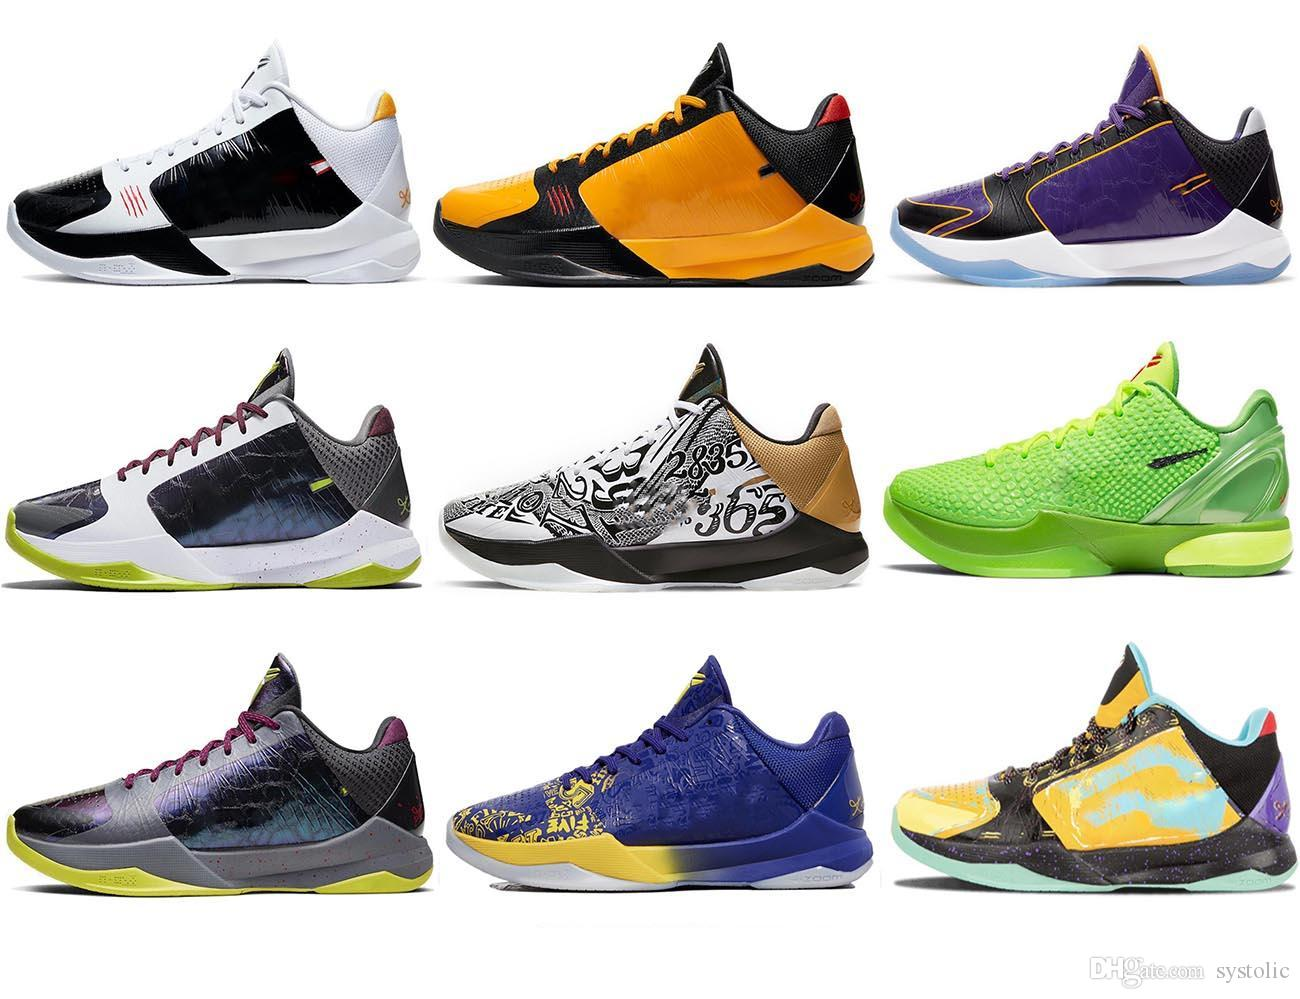 2021 Authentisches ZK5 KB5 5s Bruce Lee Protro Outdoor Shoes 5x Champ Lakers Purple Gold 2k20 Chaos Mamba Zoom ZK 5 V Mens Sneakers KB6 Trainer mit Original Box